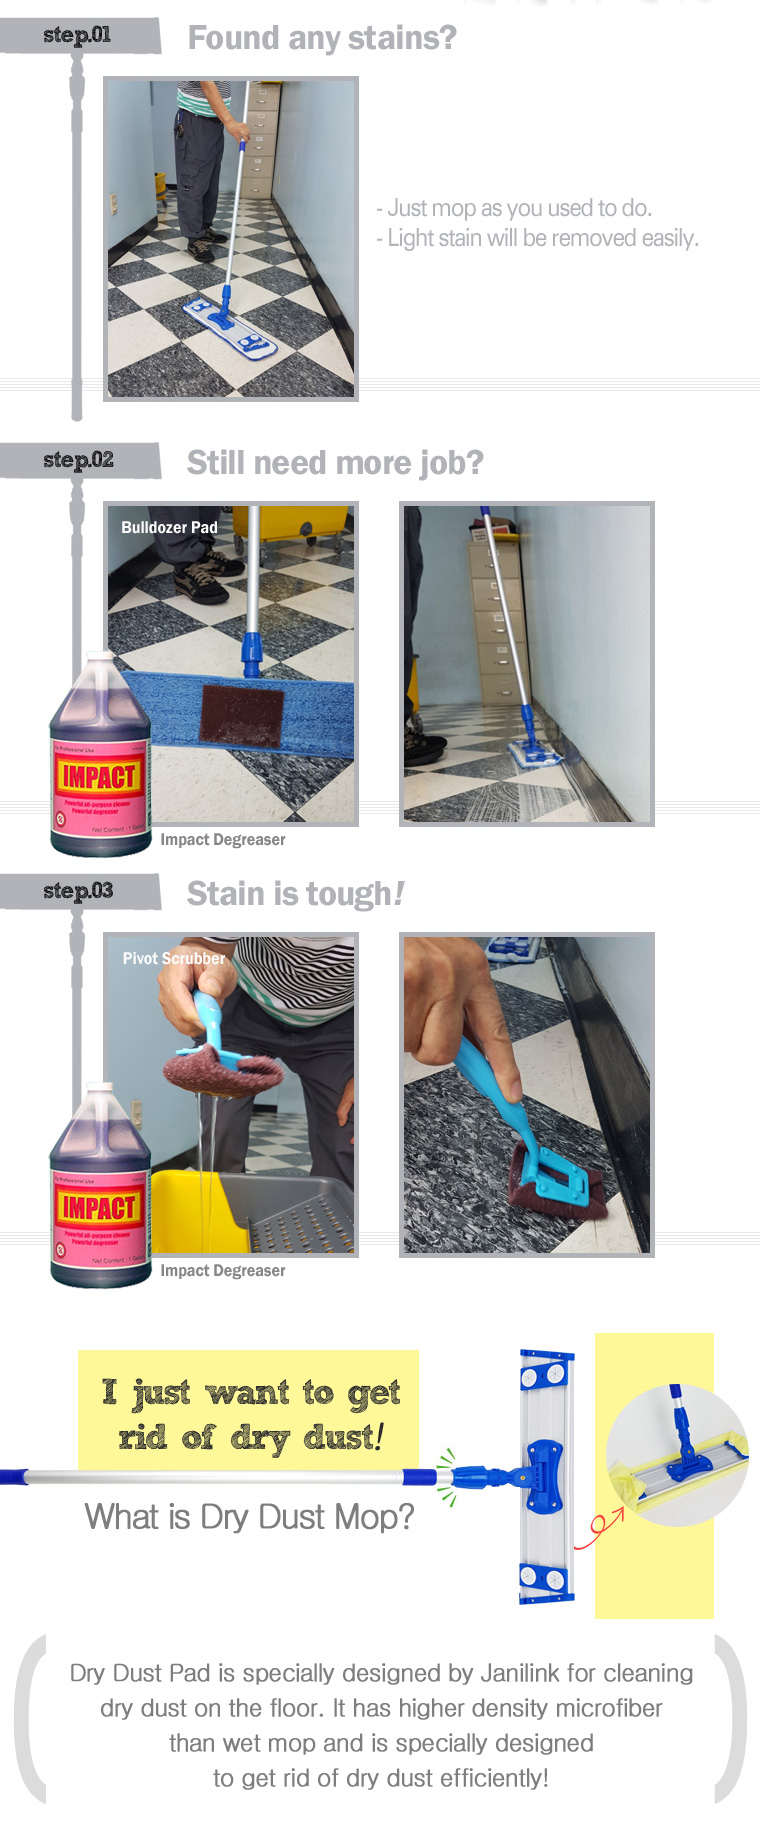 Found any stains? Just mop as you used to do. Light stain will be removed easily. Still need more job? Stain is tough!